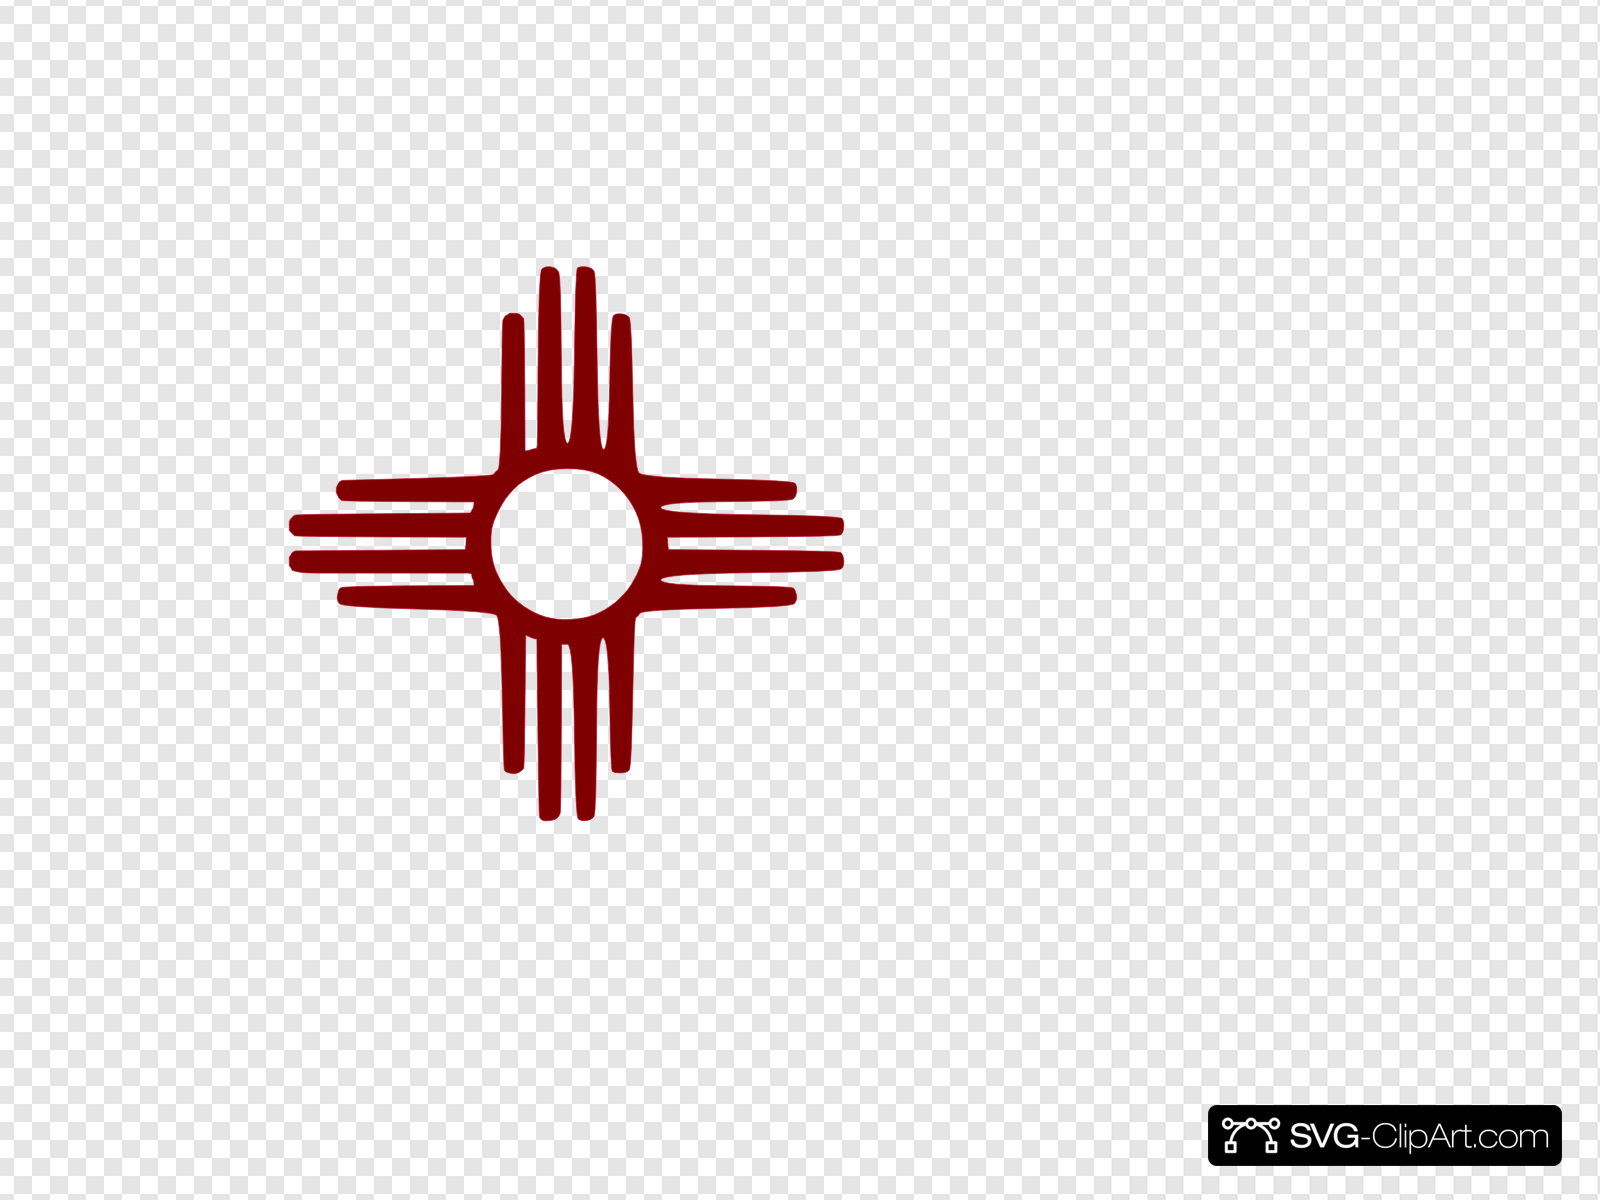 Zia Symbol Maroon Clip art, Icon and SVG.